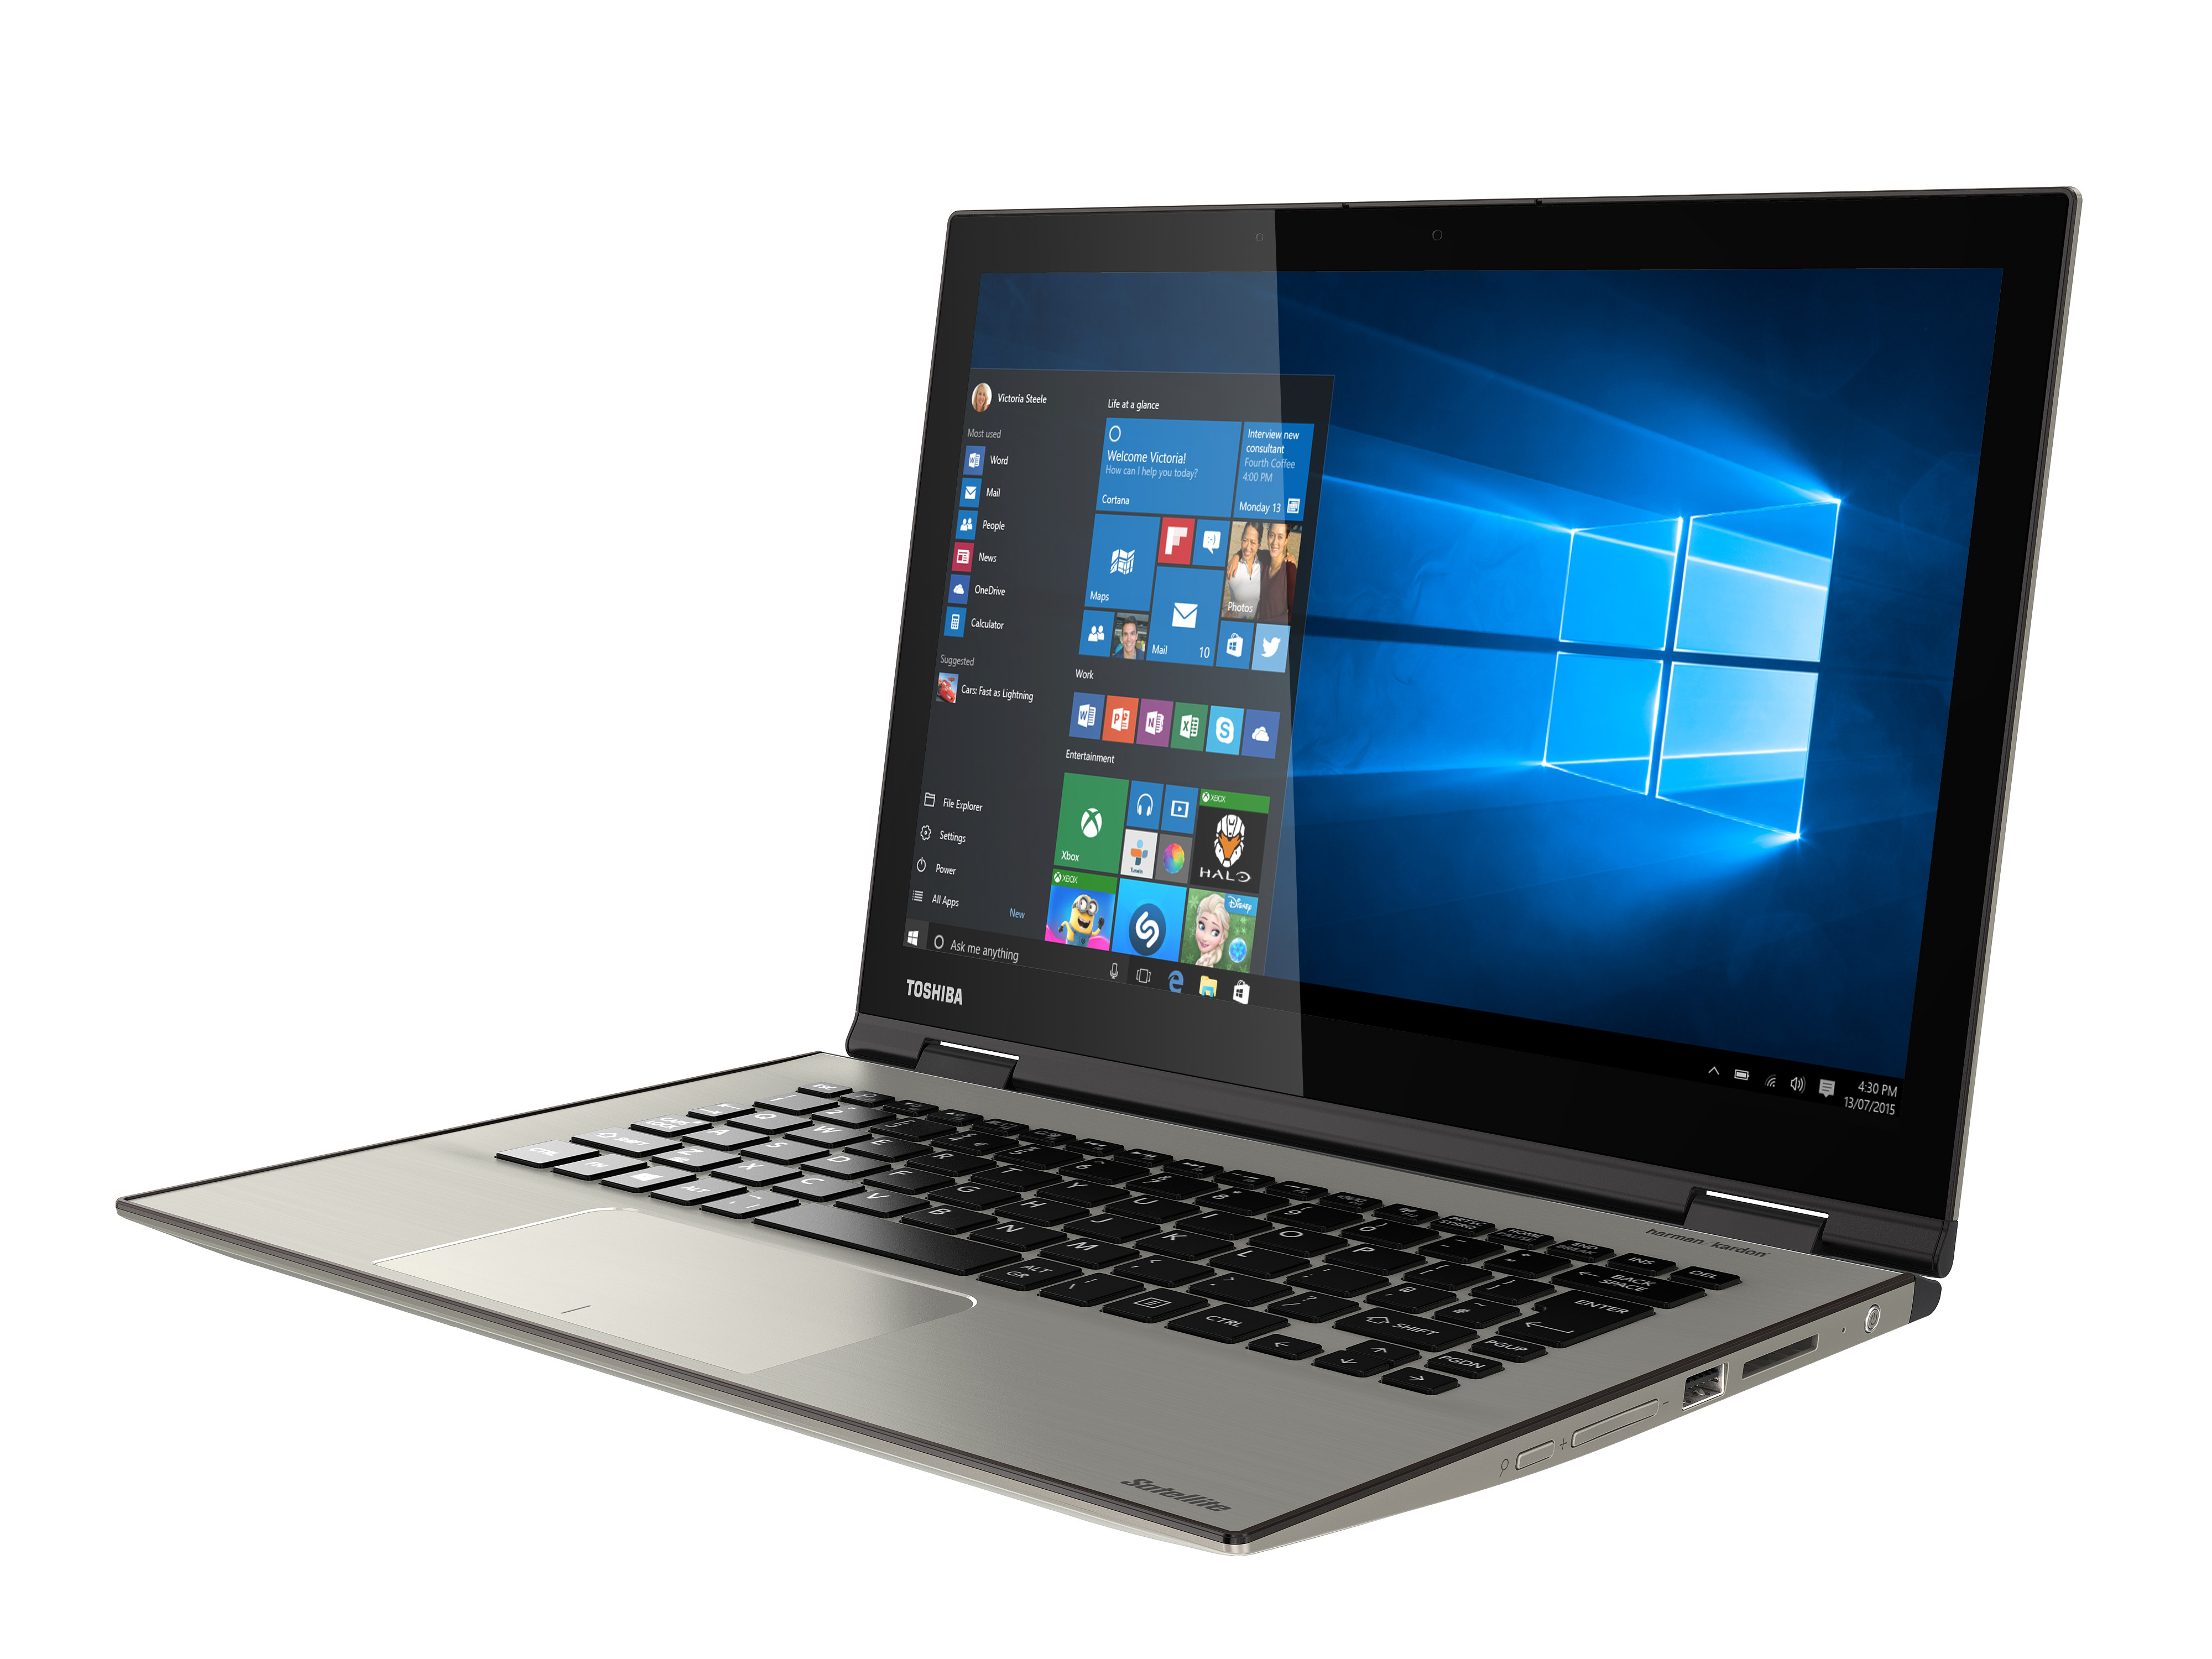 Laptops like the Toshiba Satellite Radius 12 could benefit from a 3.5mm digital-analogue audio output jack for an audio connection